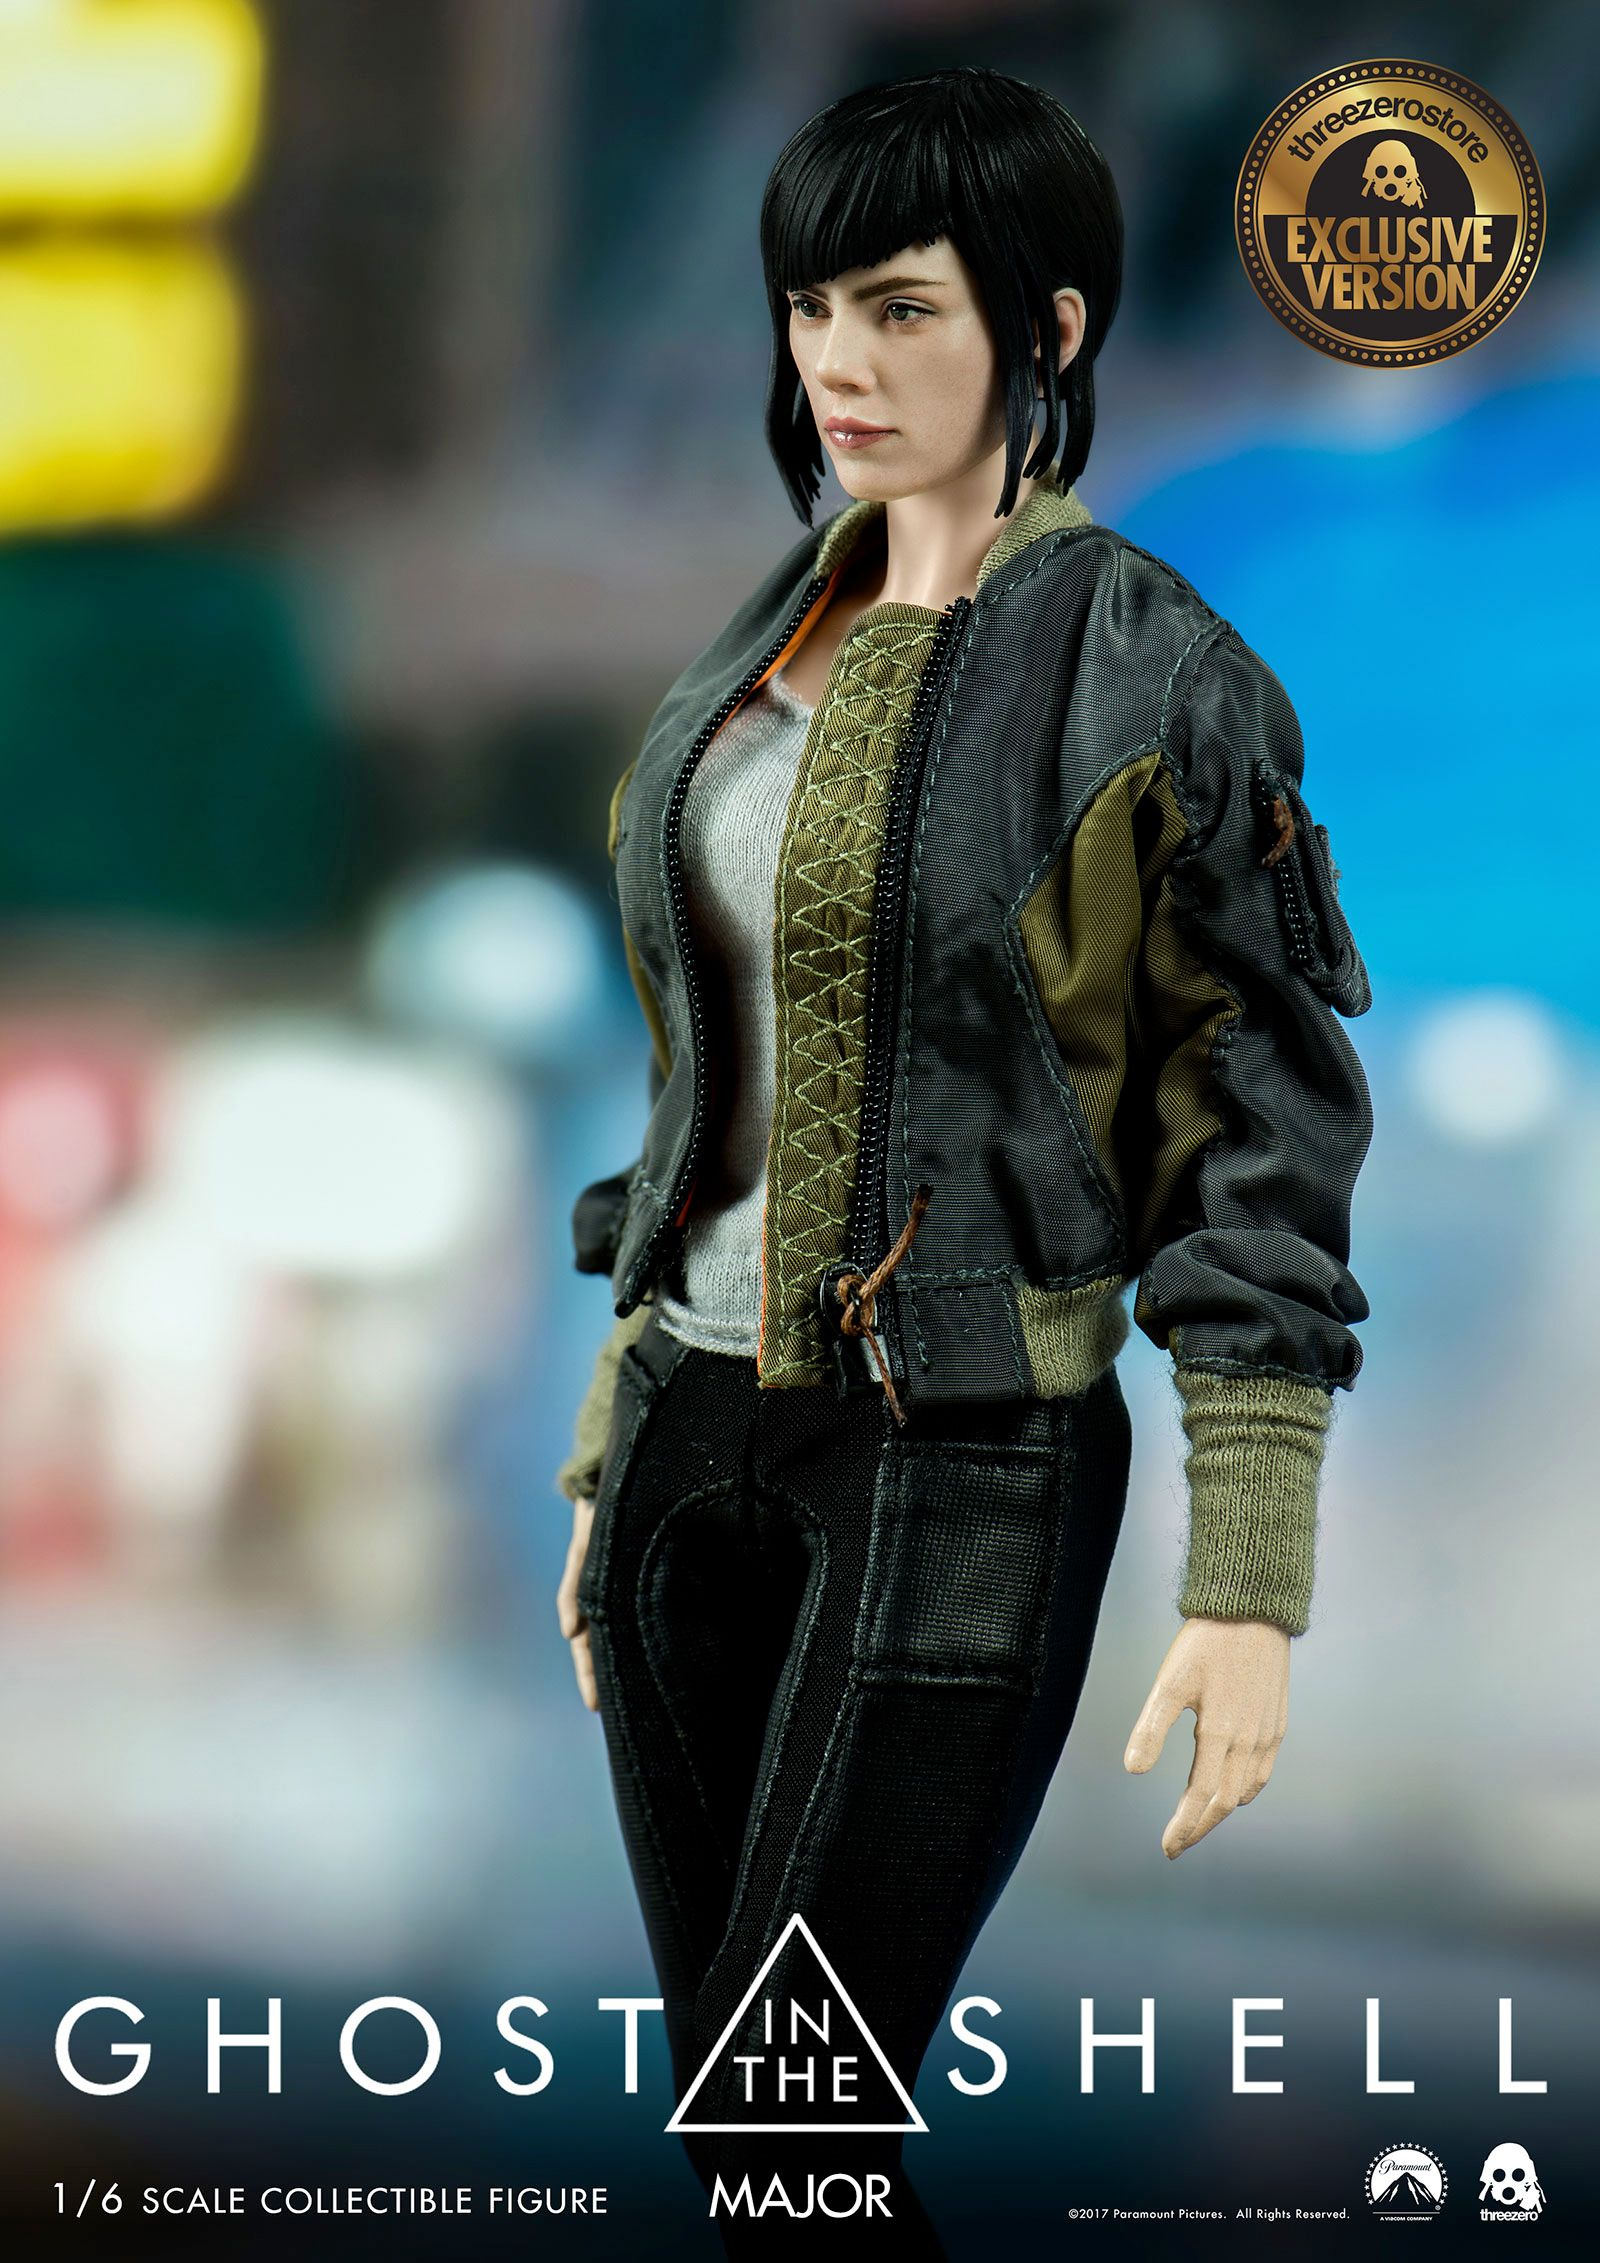 Ghost-In-The-Shell-MAJOR-Collectible-Action-Figure-11